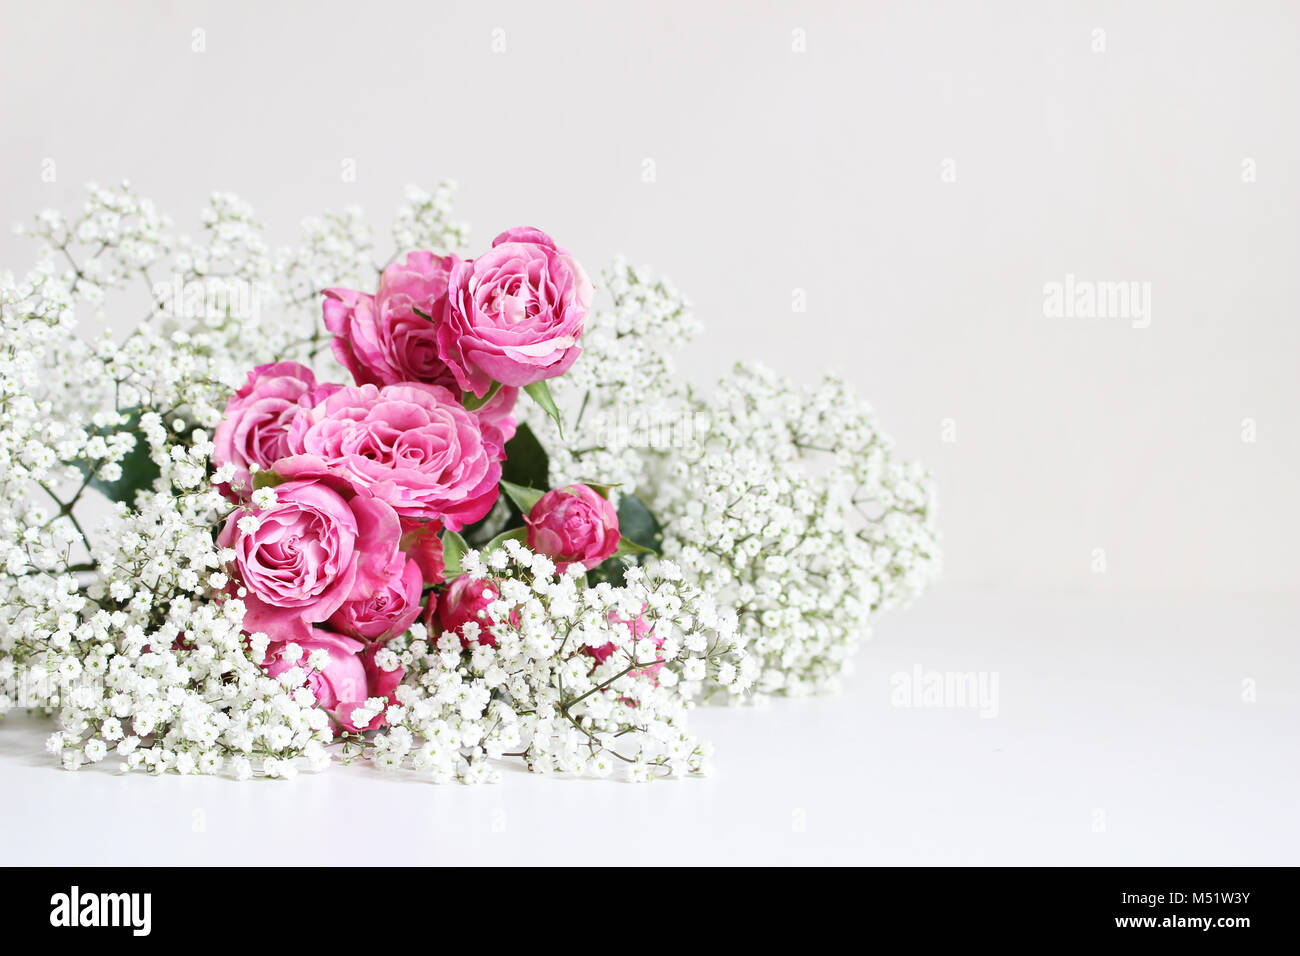 Wedding styled stock photo. Still life with pink roses and baby's breath Gypsophila flowers on white table background. Stock Photo